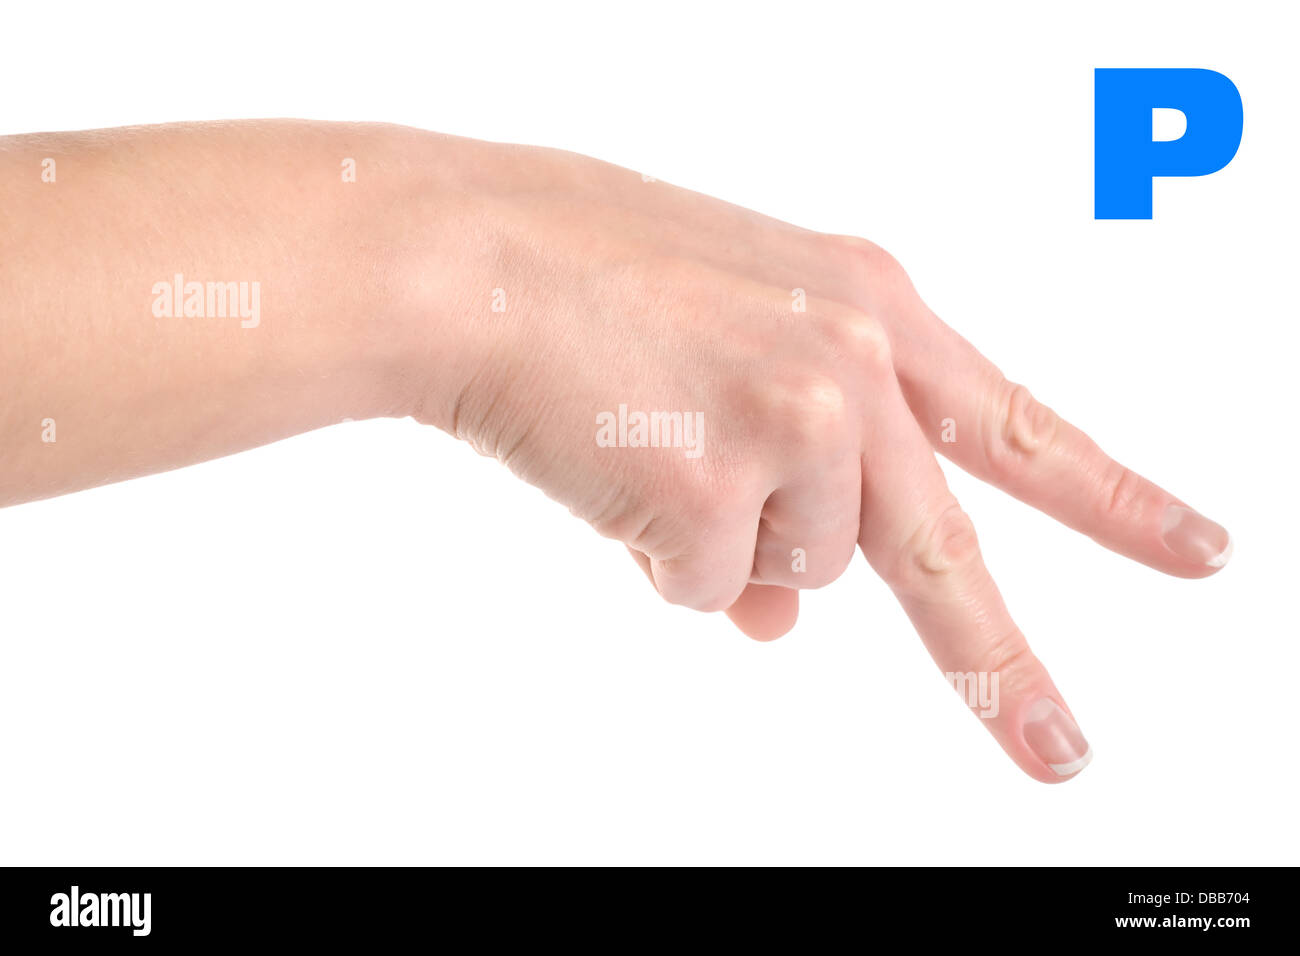 Finger Spelling The Alphabet In American Sign Language Asl The Letter P